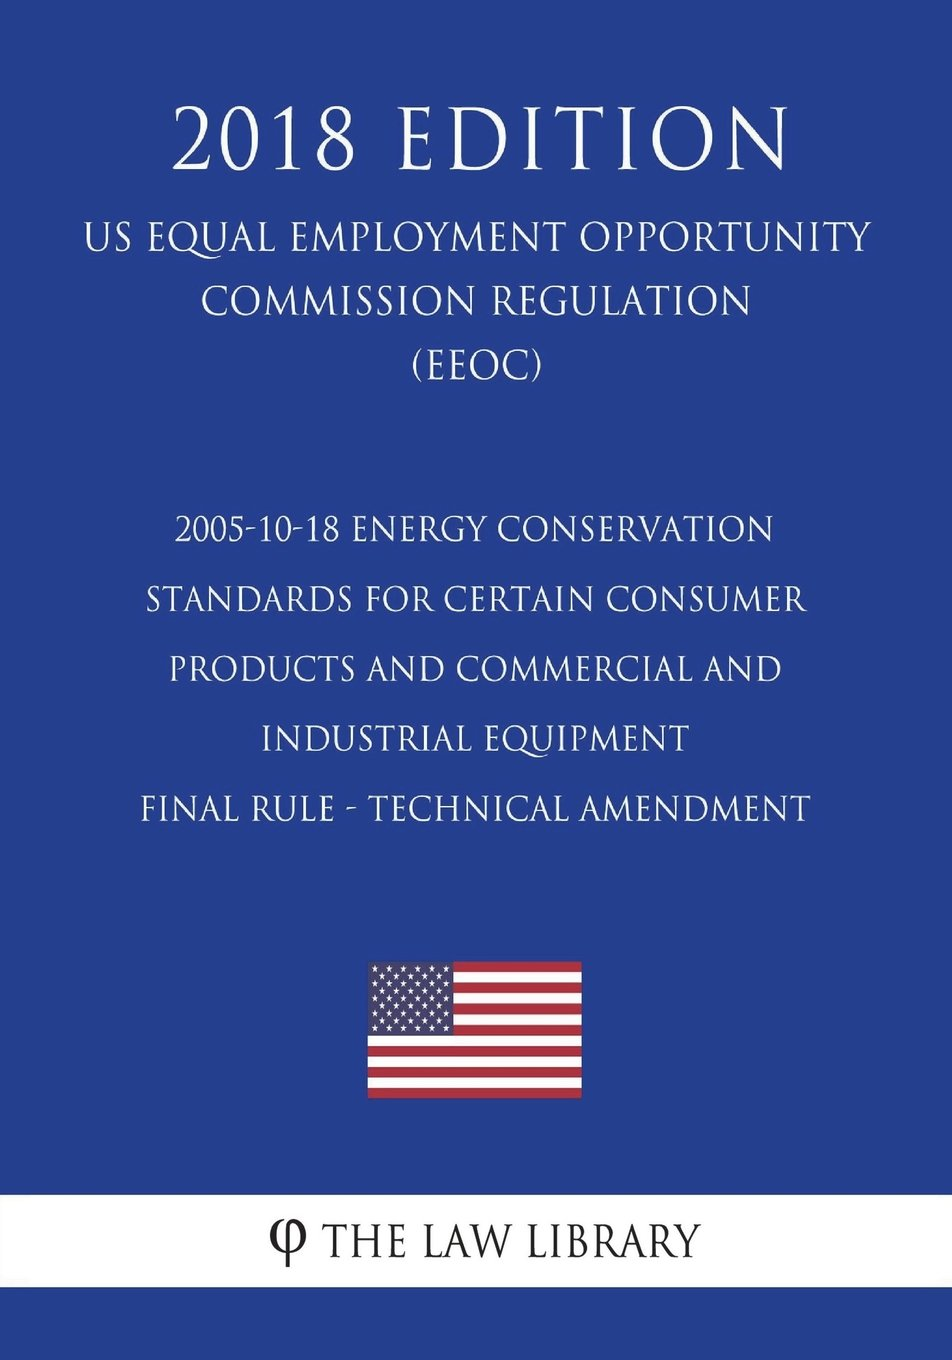 Download 2005-10-18 Energy Conservation Standards for Certain Consumer Products and Commercial and Industrial Equipment - Final rule - technical amendment (US ... Office Regulation) (EERE) (2018 Edition) pdf epub